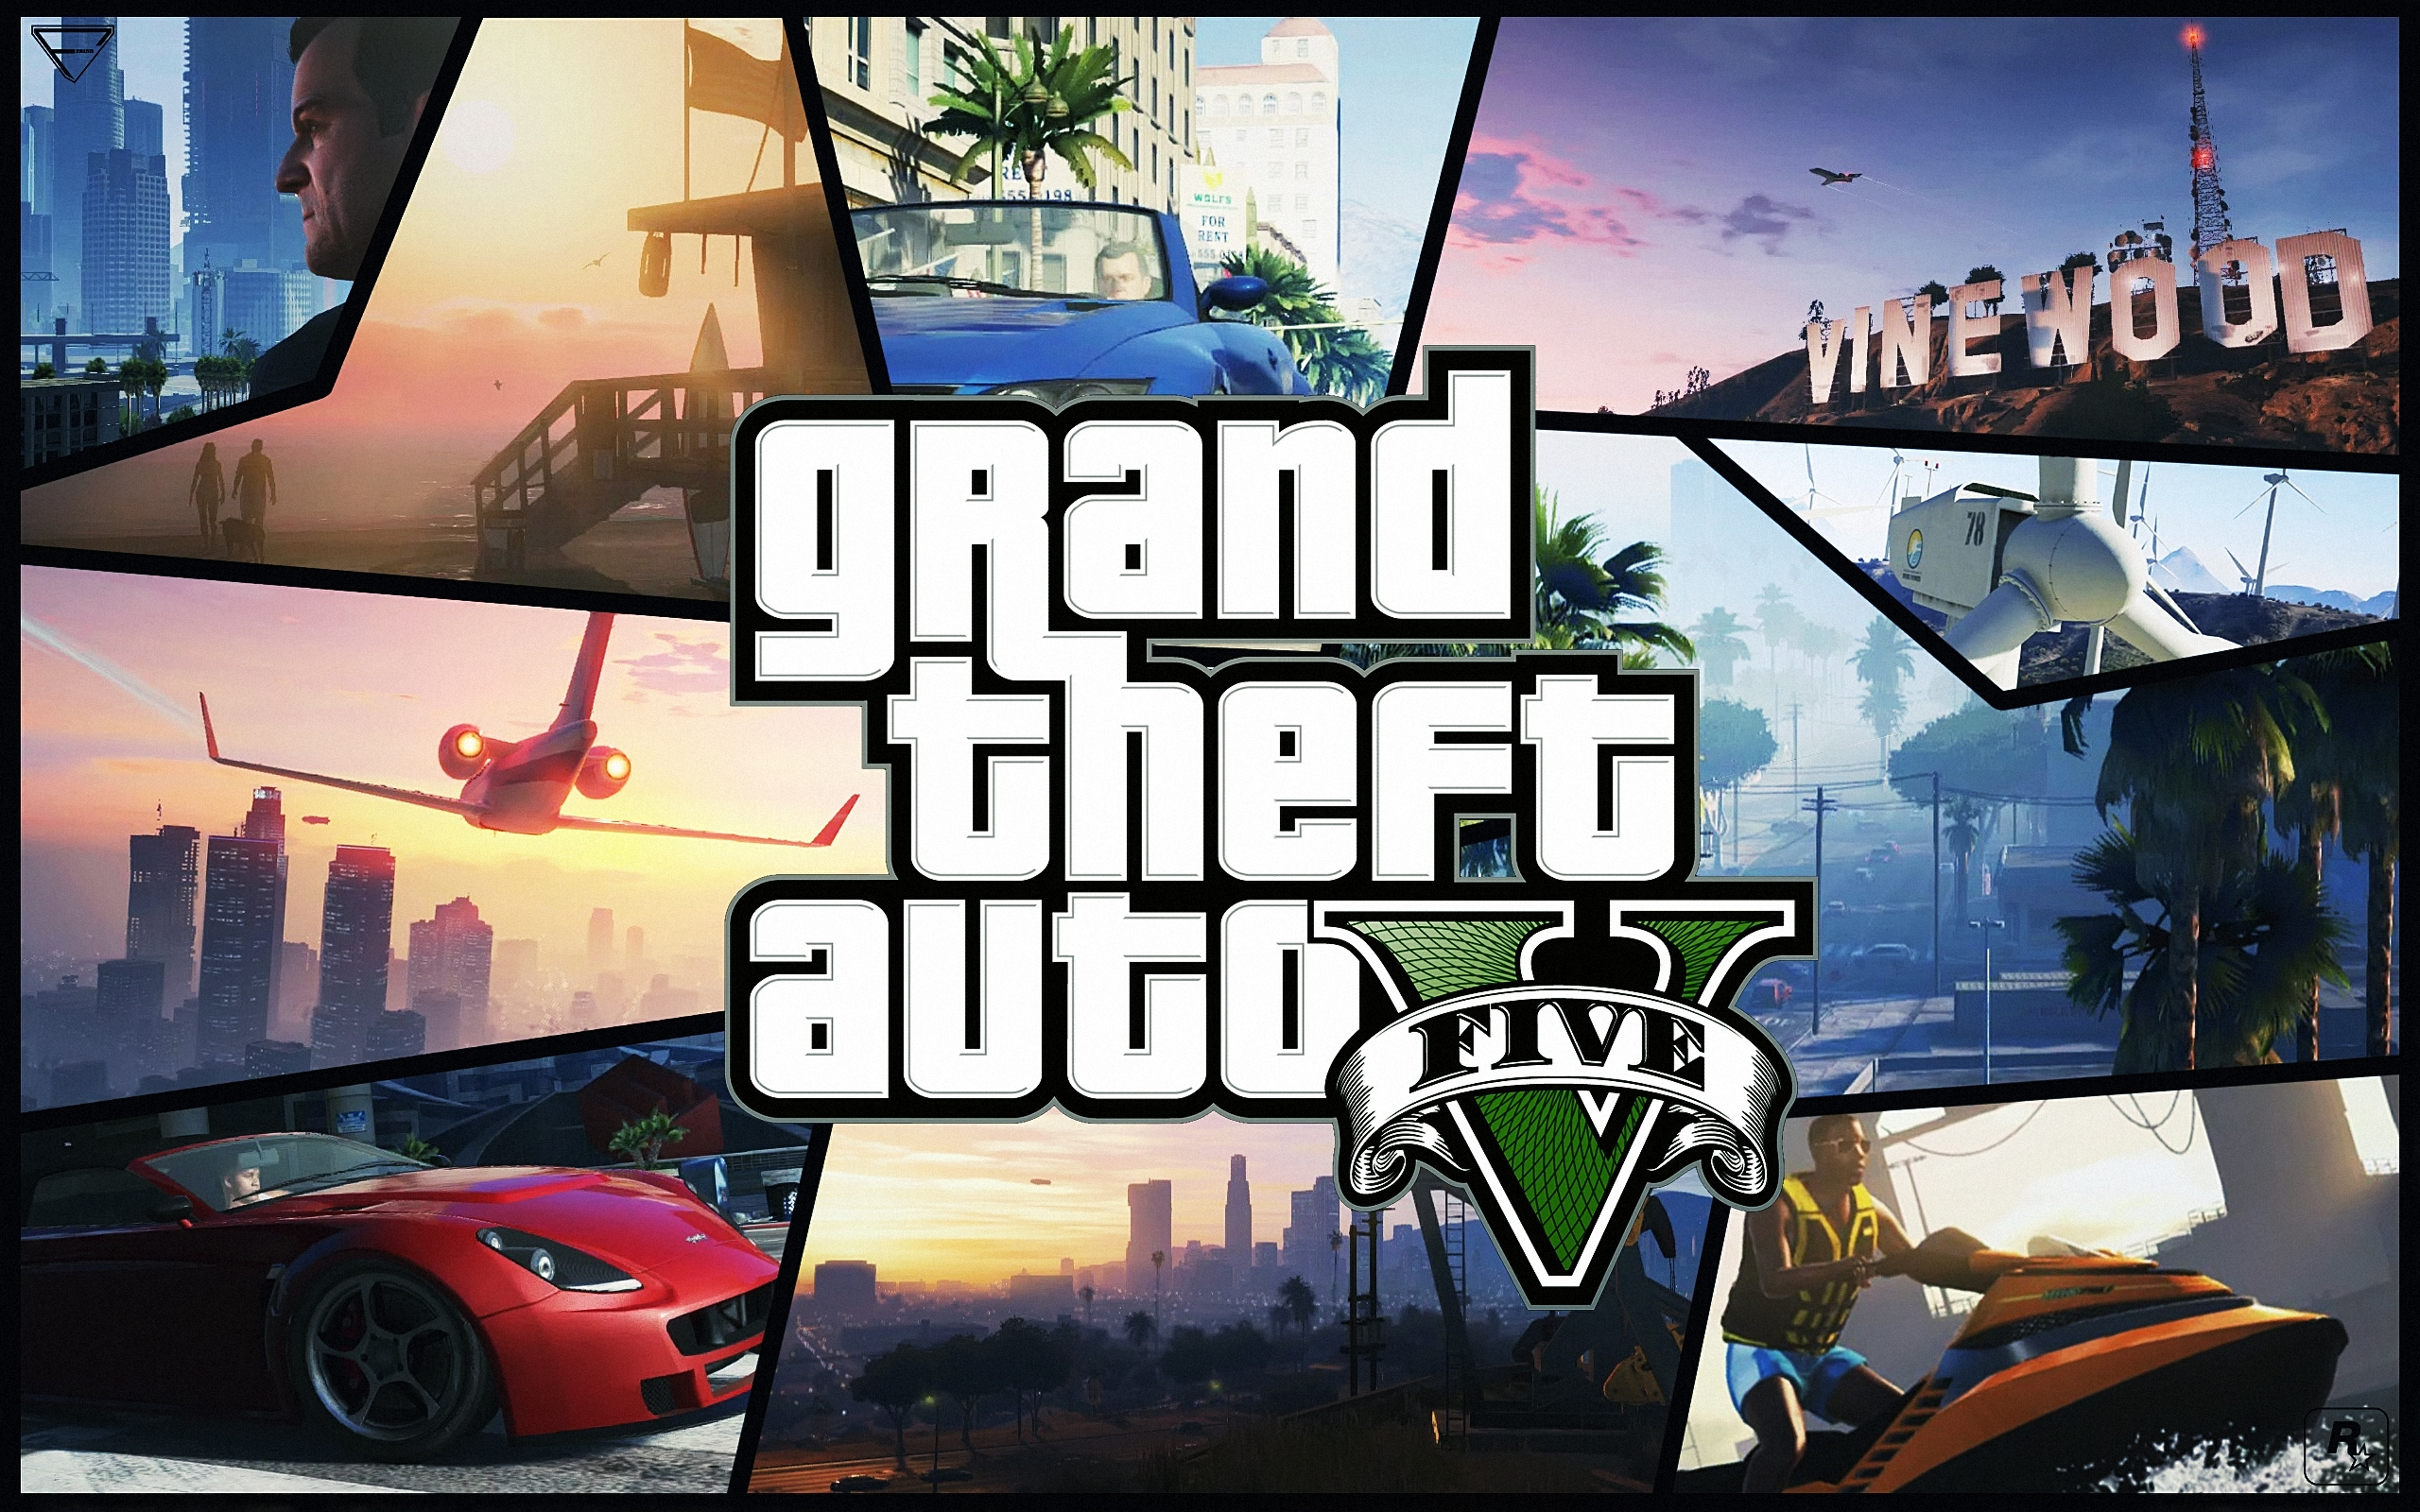 GTA 5 Wallpaper Download HD 2560x1600